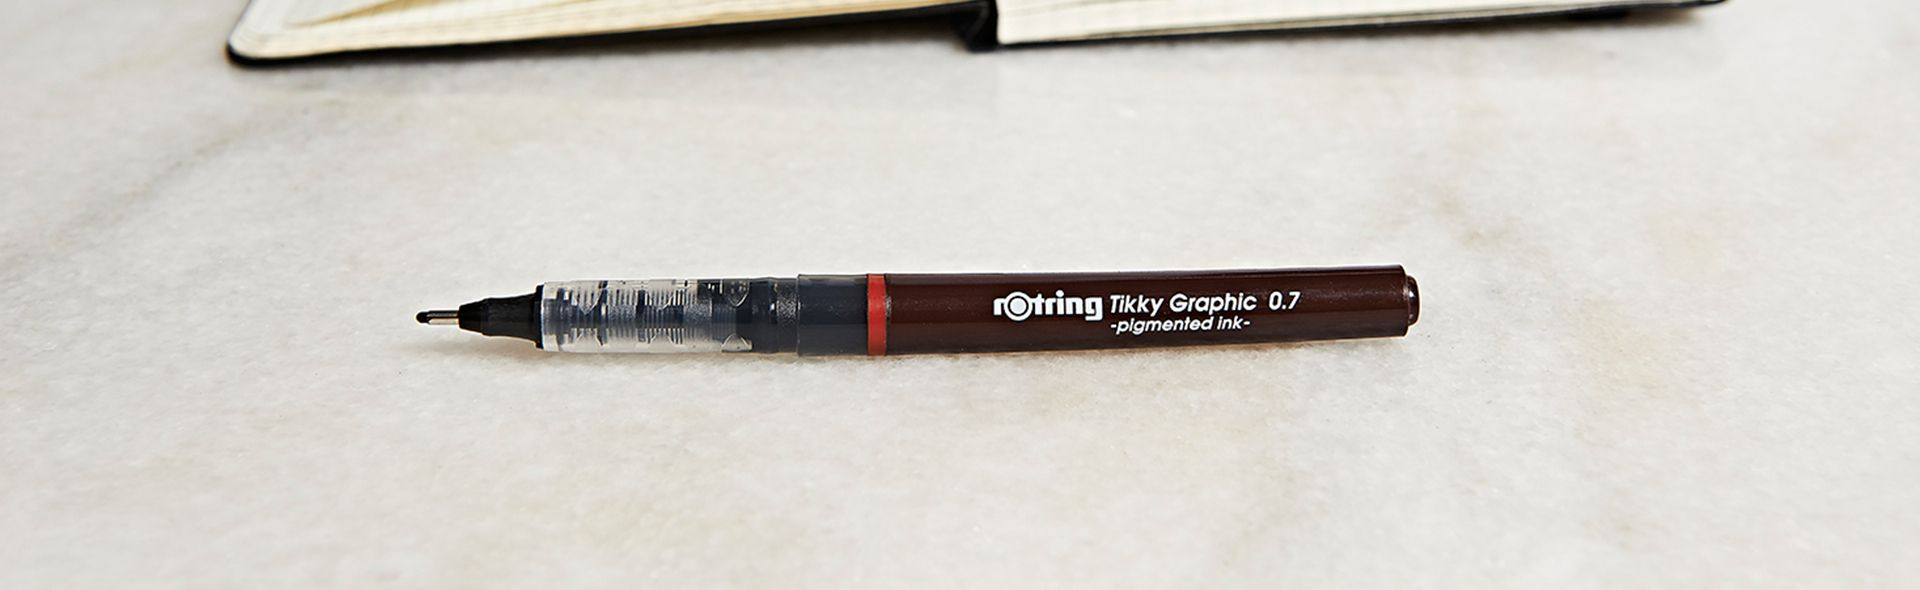 Rotring Tikky Graphic Technical Pen | Inktober Art Supply Review — Sadie  Saves the Day!